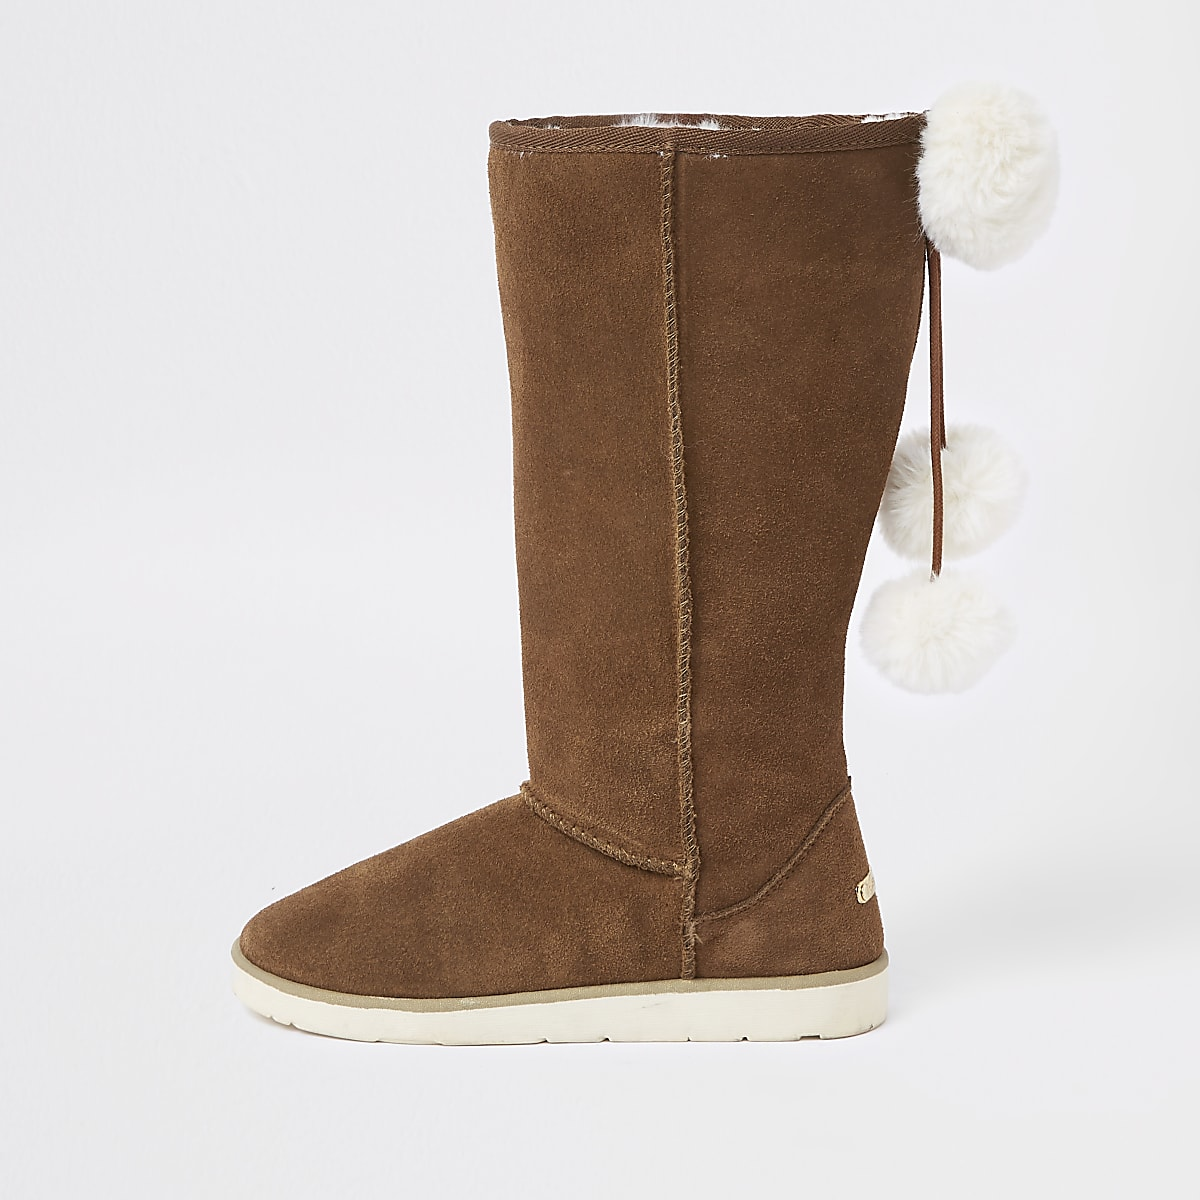 Light brown suede faux fur pom pom boots